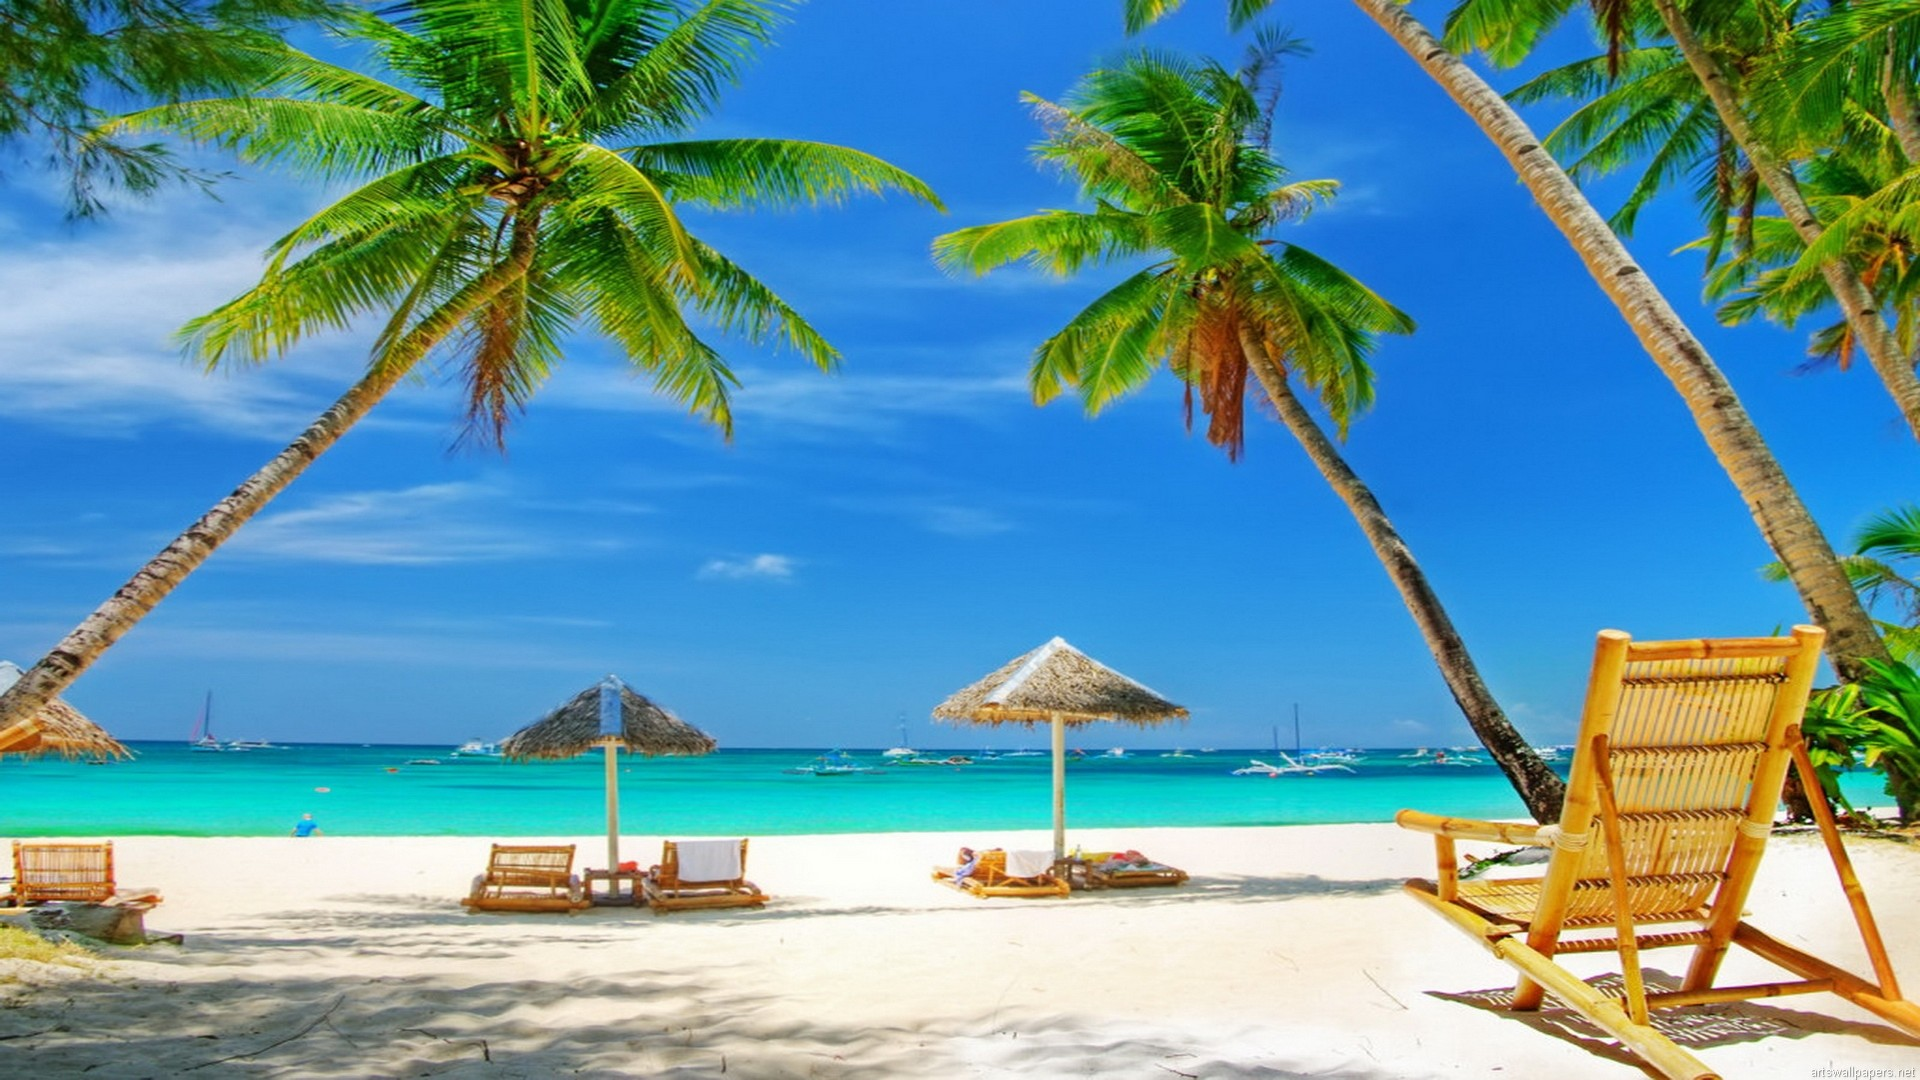 Download Sunny Beach Wallpaper pictures in high definition or .